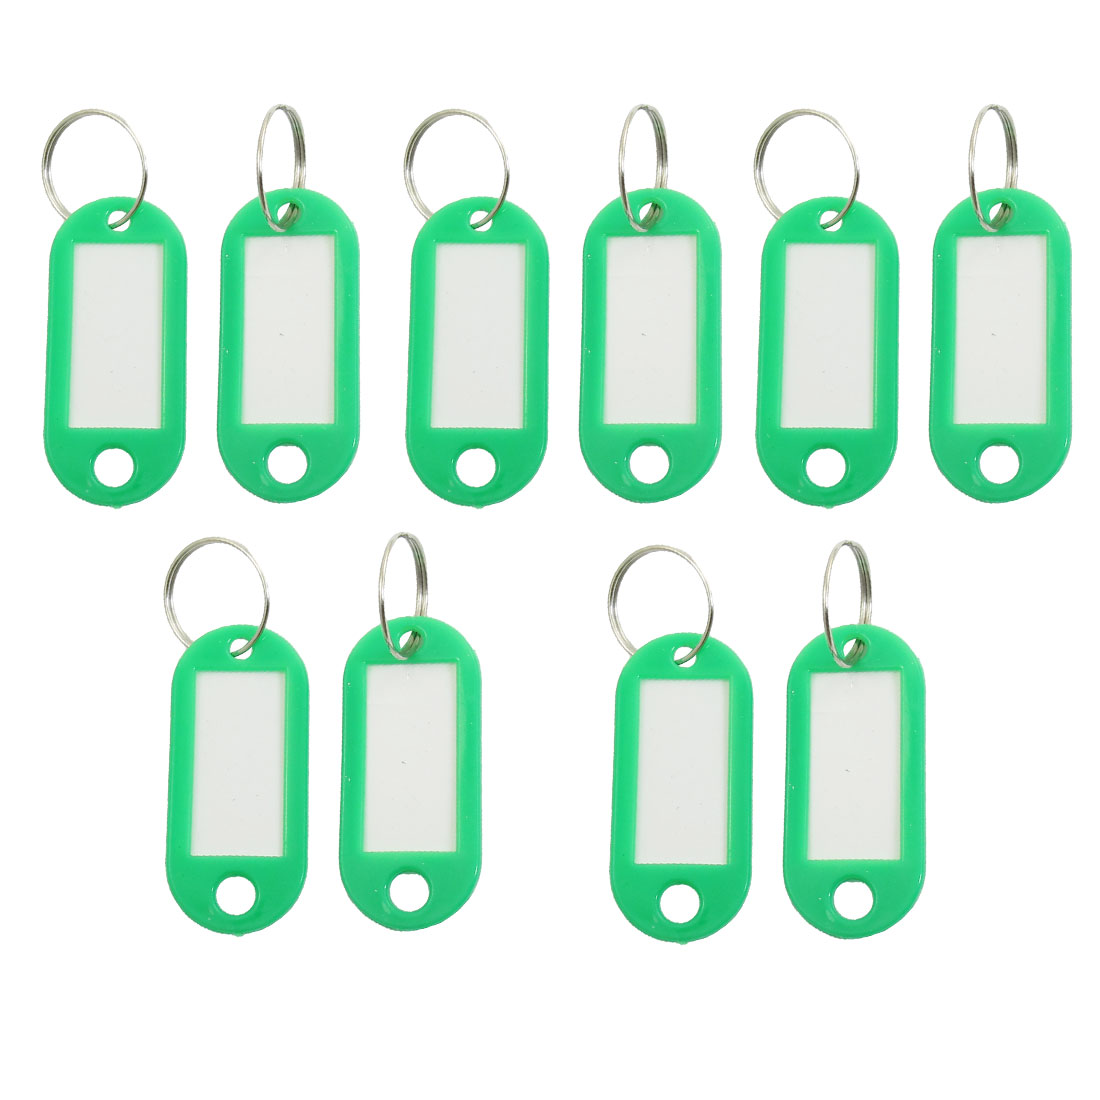 Bag Plastic Name Notes Tag ID Label Split Ring Keychain Key Holder Green 10 PCS